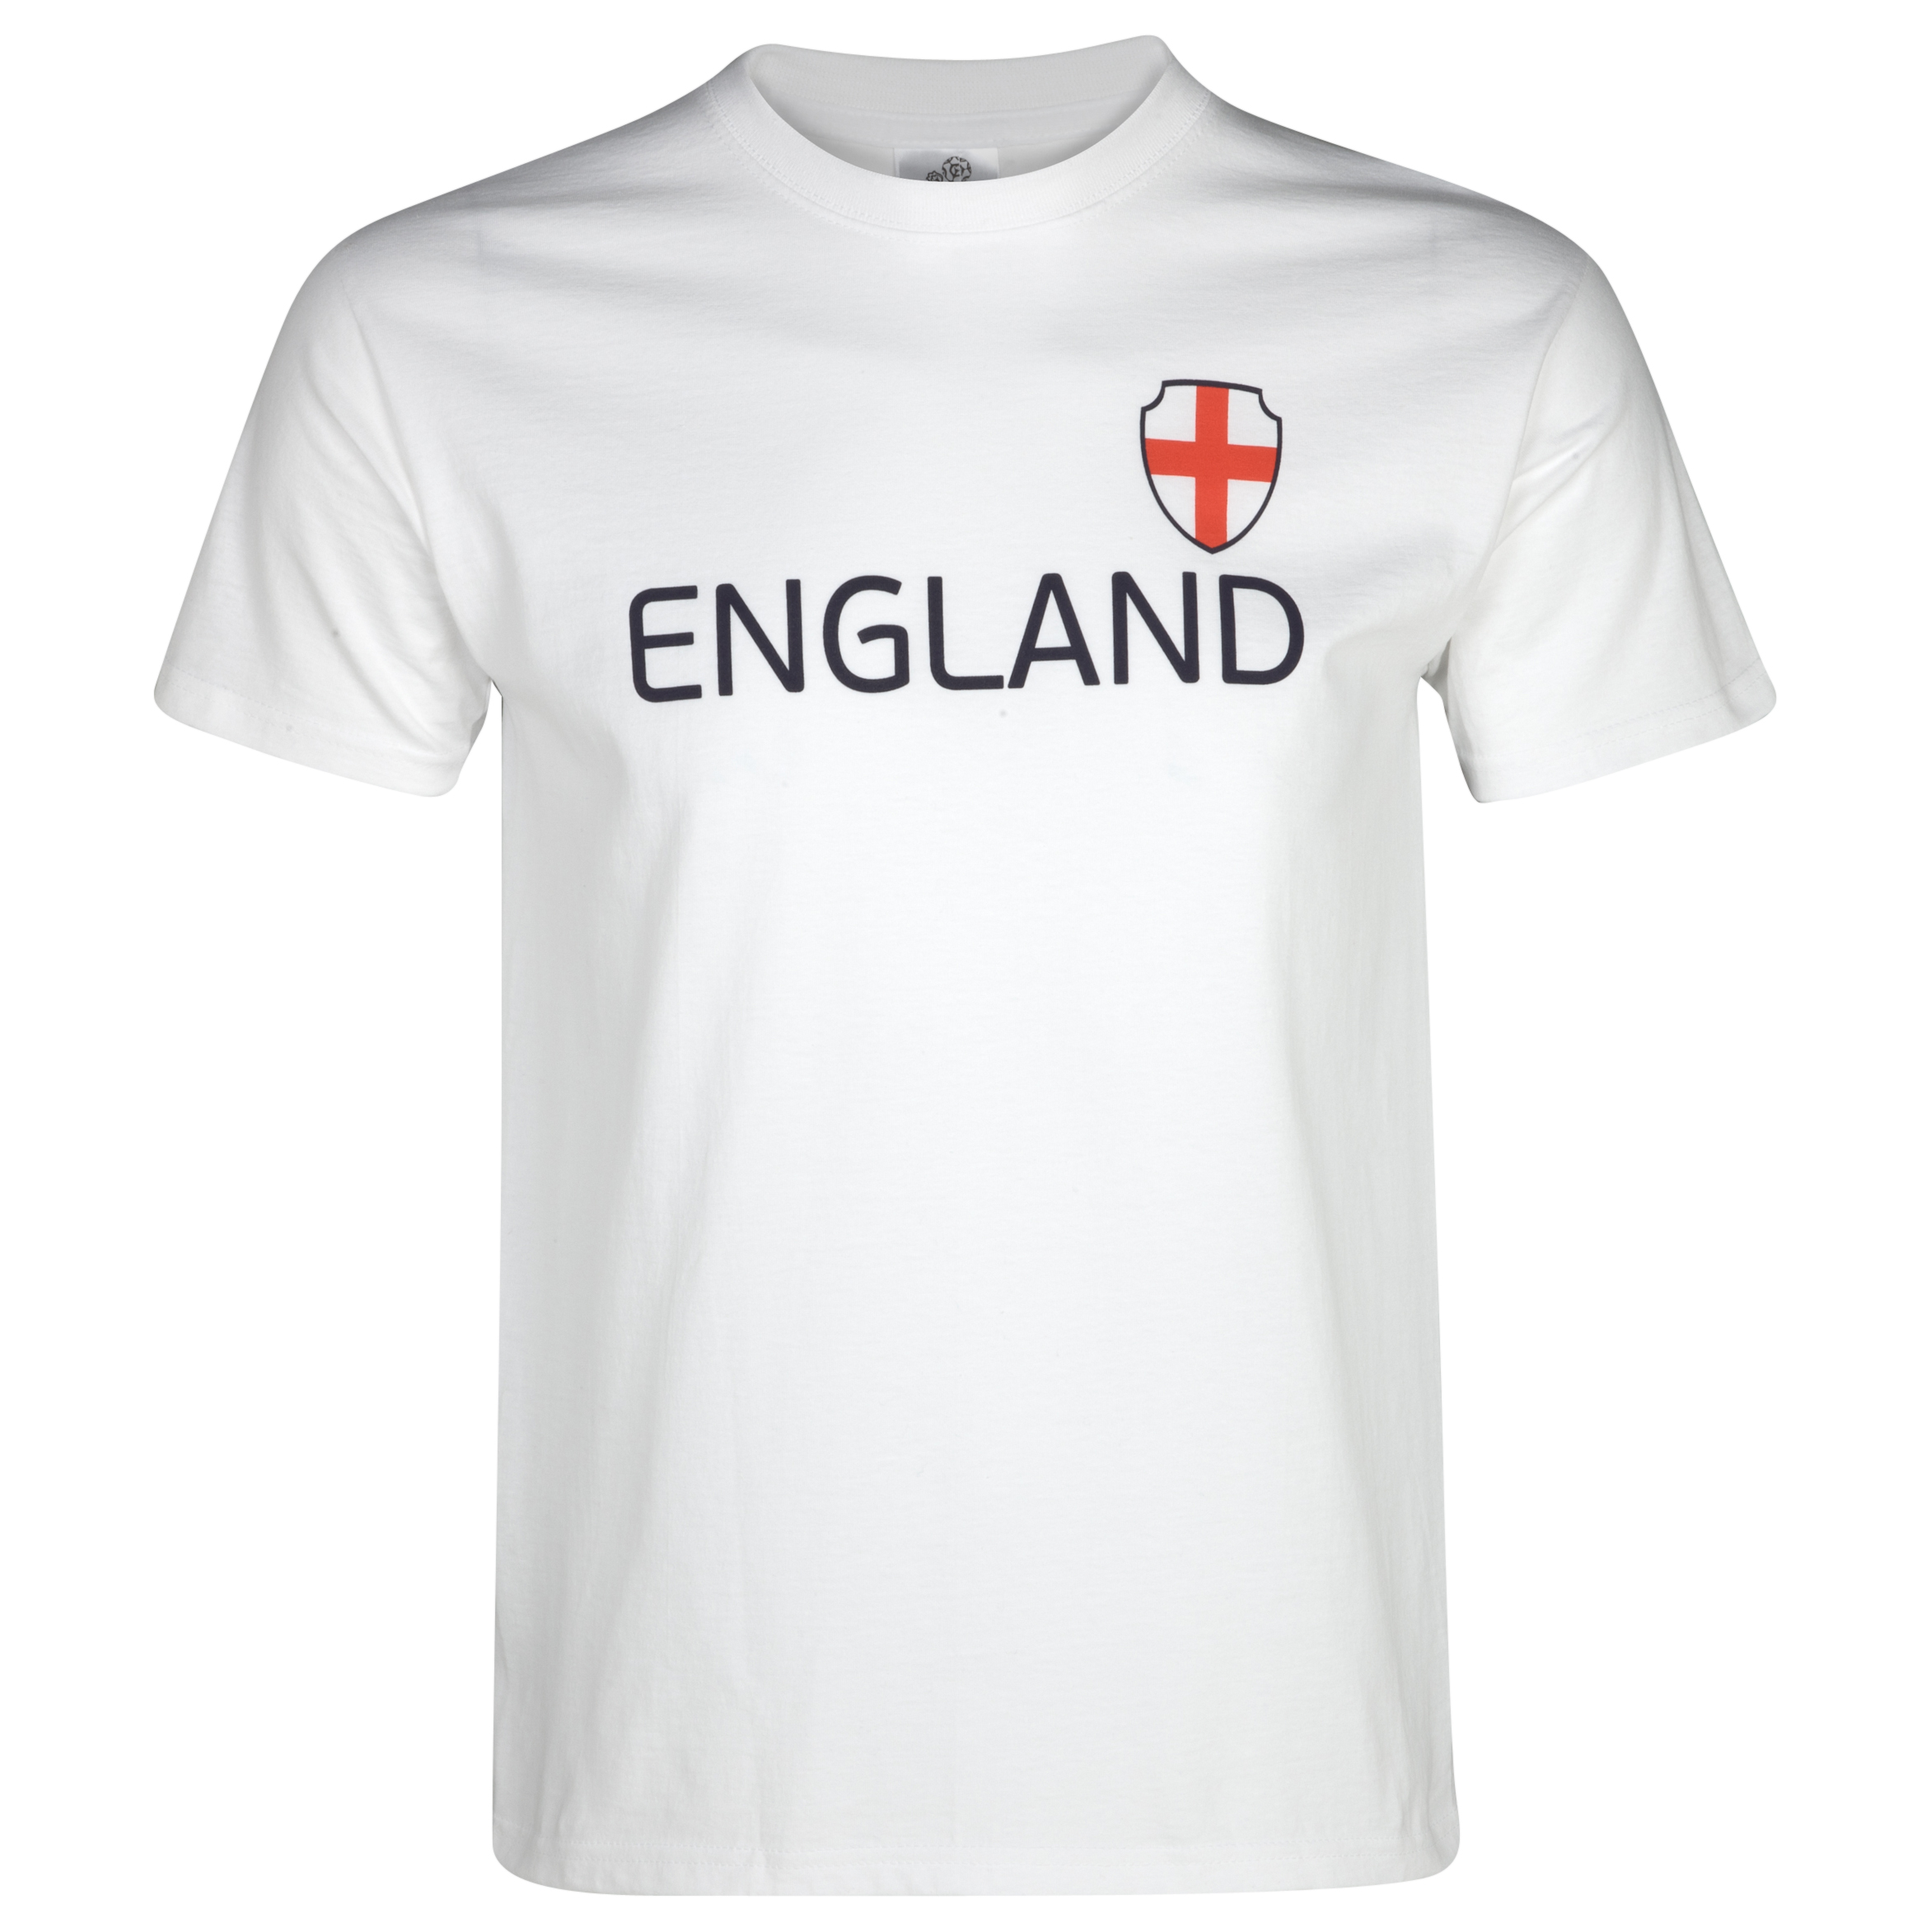 England T-Shirt - White/Blue